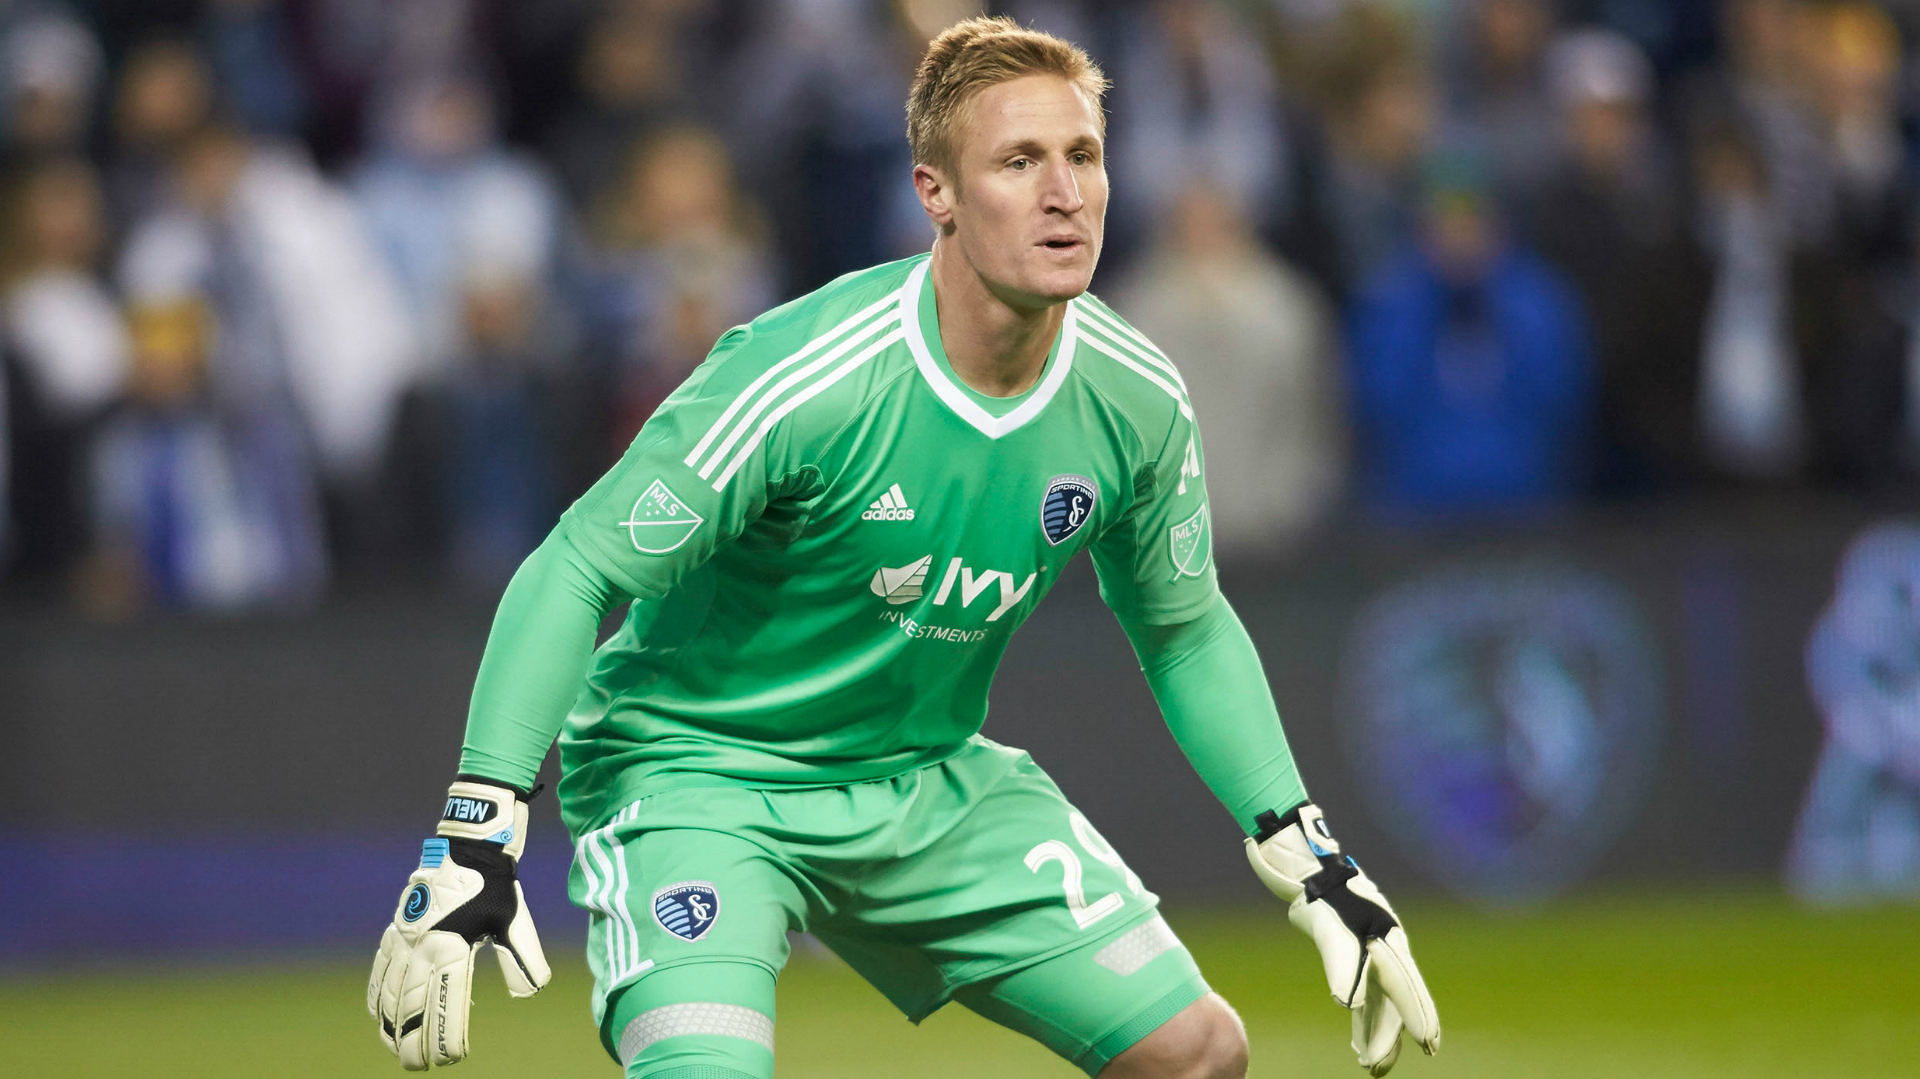 Tim Melia Sporting Kansas City